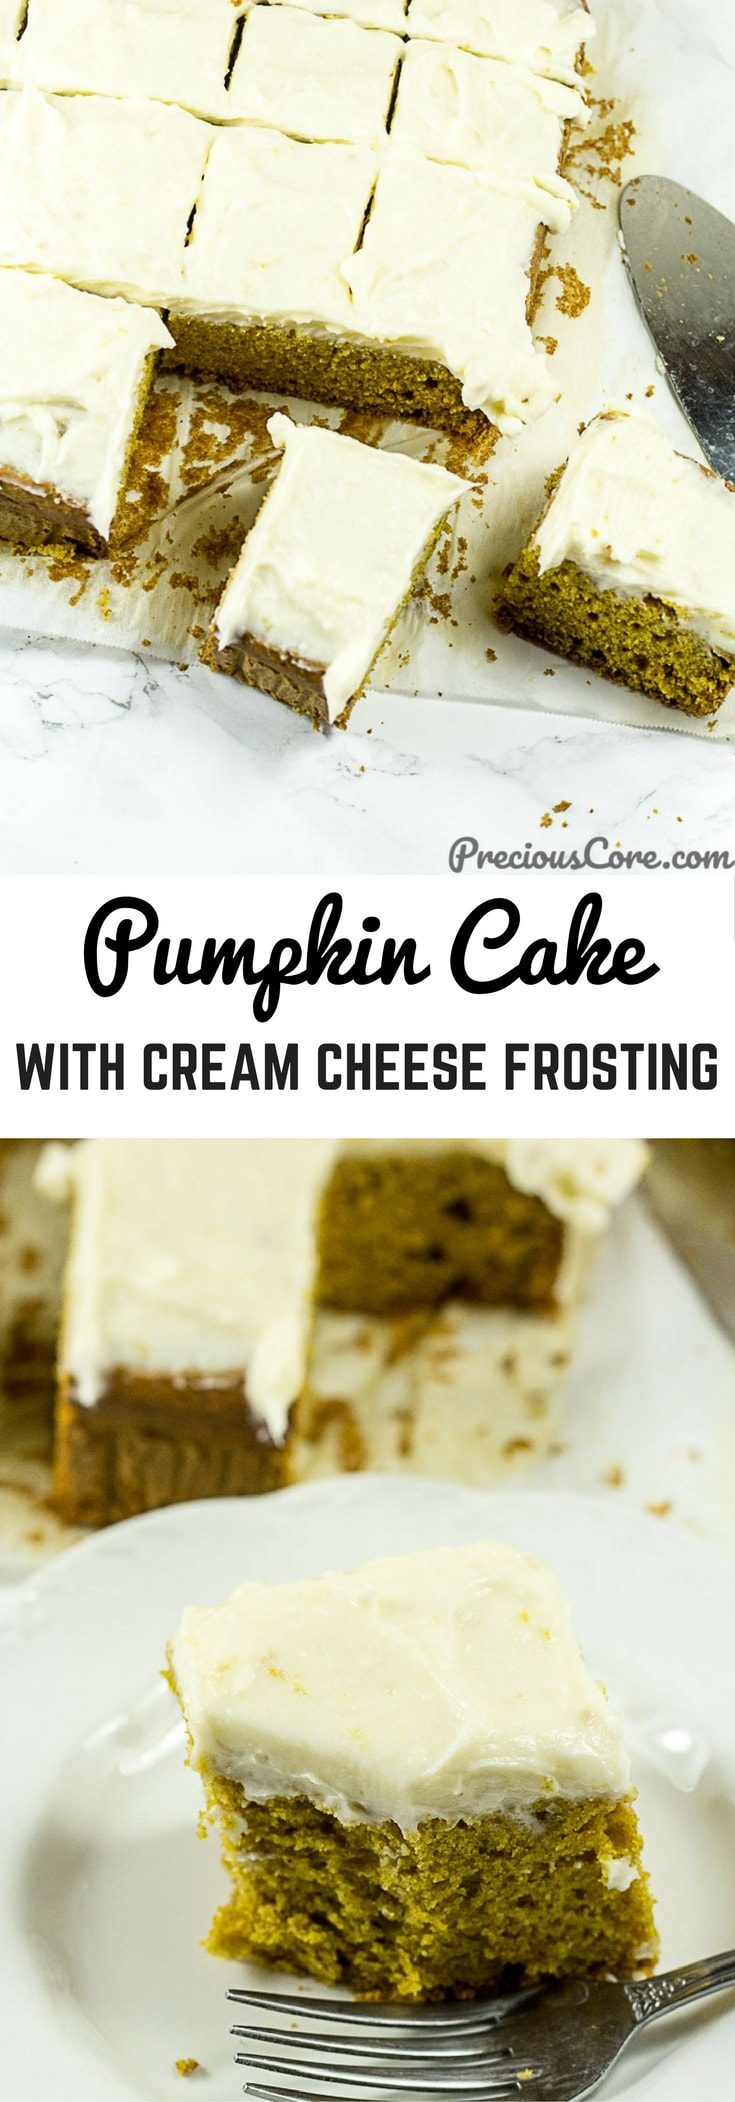 The best ever Pumpkin Cake with Cream Cheese Frosting. Perfect for your Thanksgiving/celebration table! #Thanksgiving #Thanksgiving2017 #Cakes #PumpkinCake